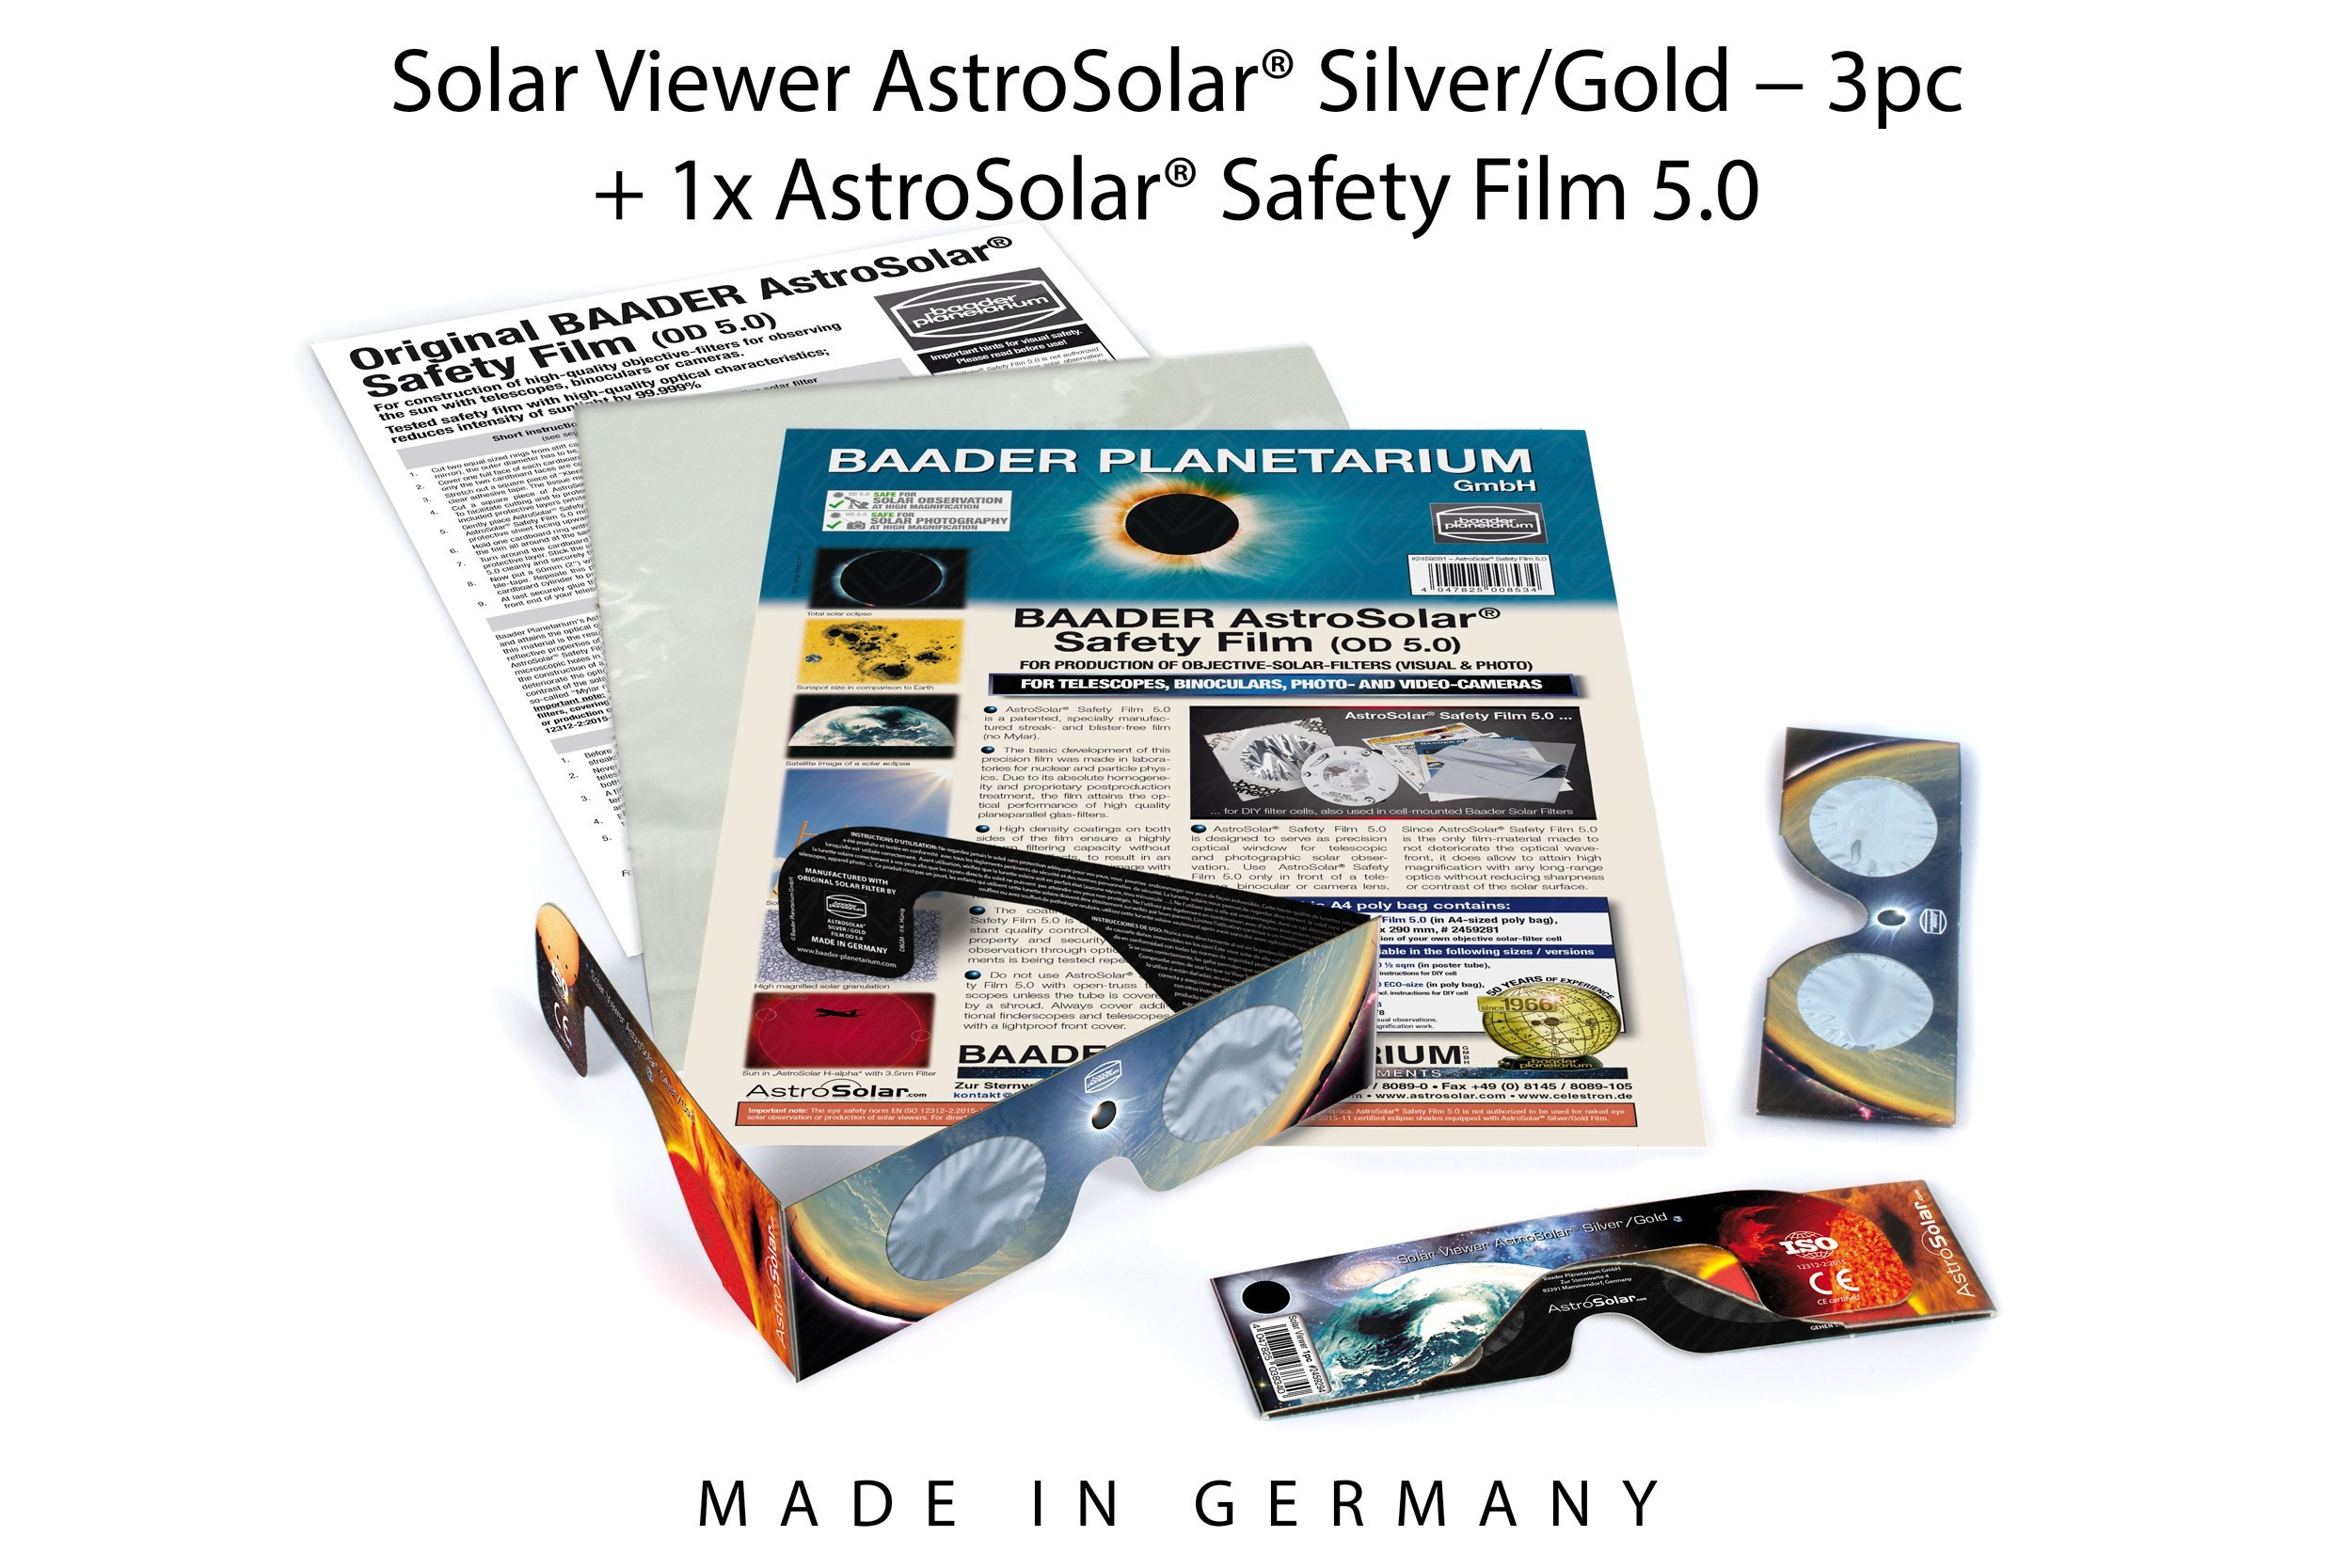 Solar Viewer AstroSolar® Set with 3 Solar Viewers and 1 sheet of AstroSolar® Safety Film A4